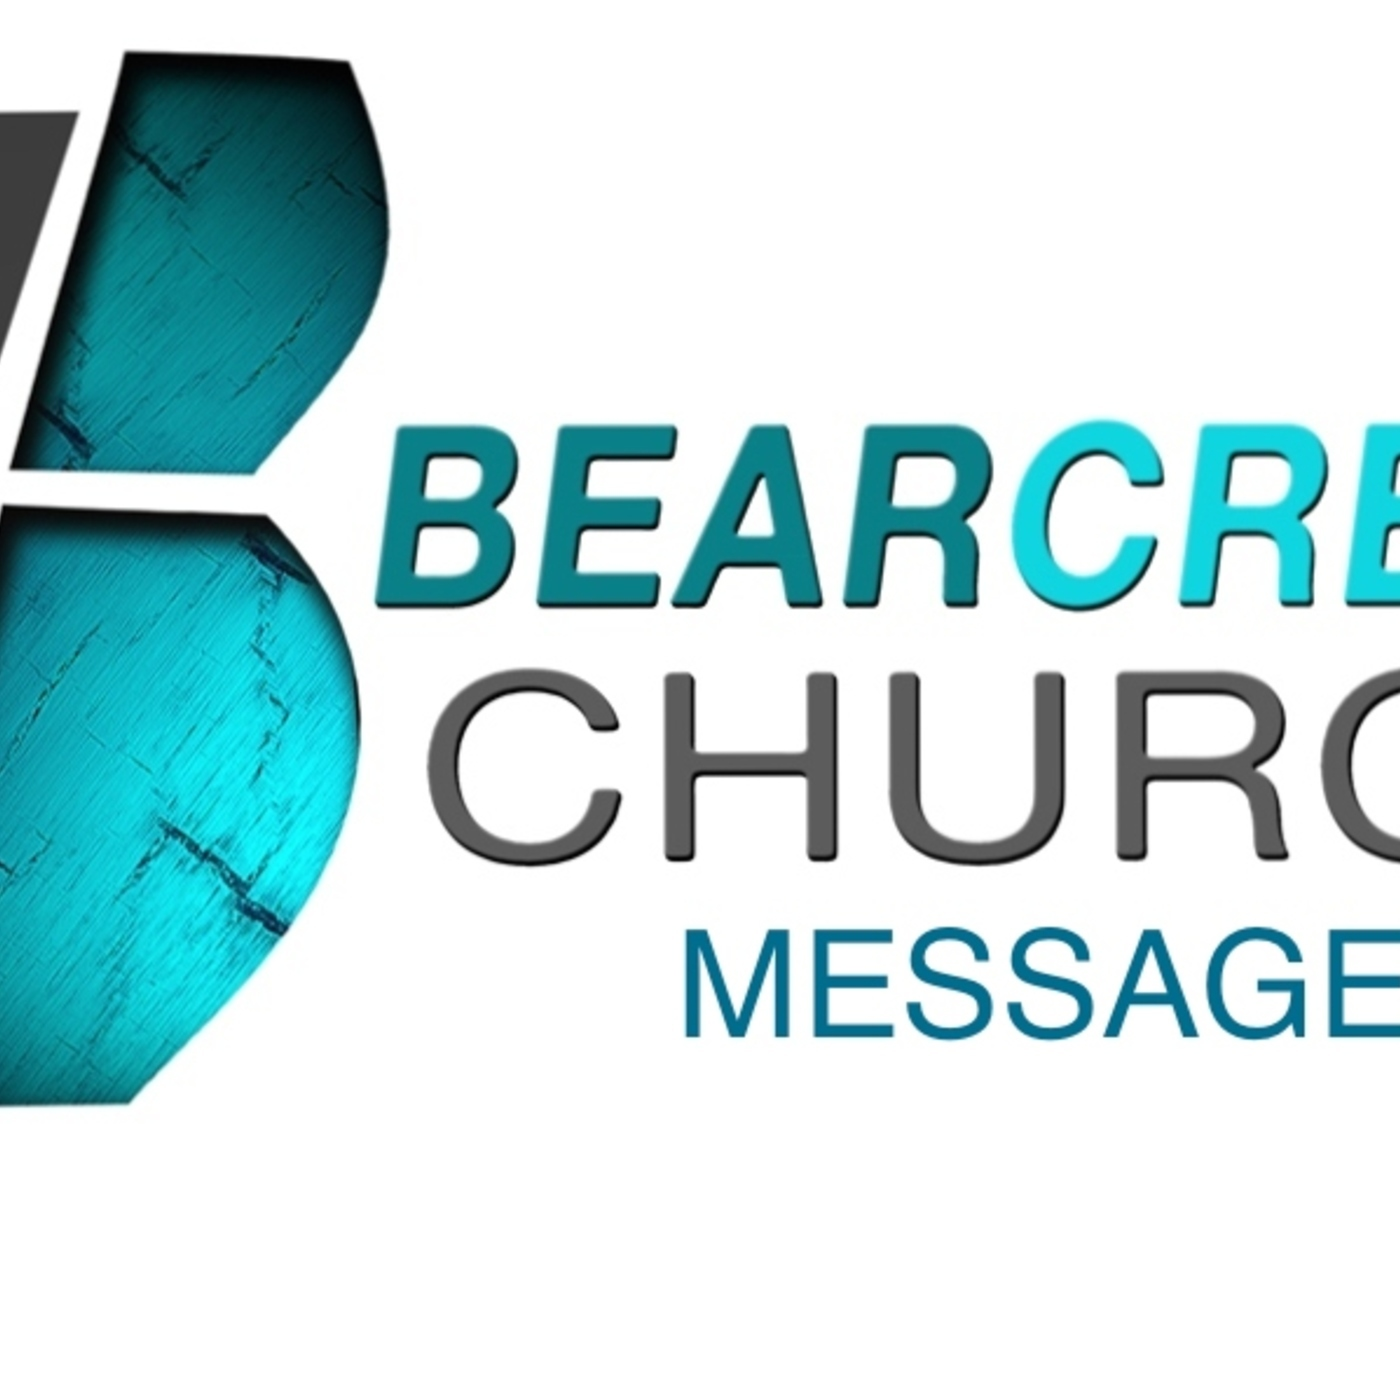 Bear Creek Church